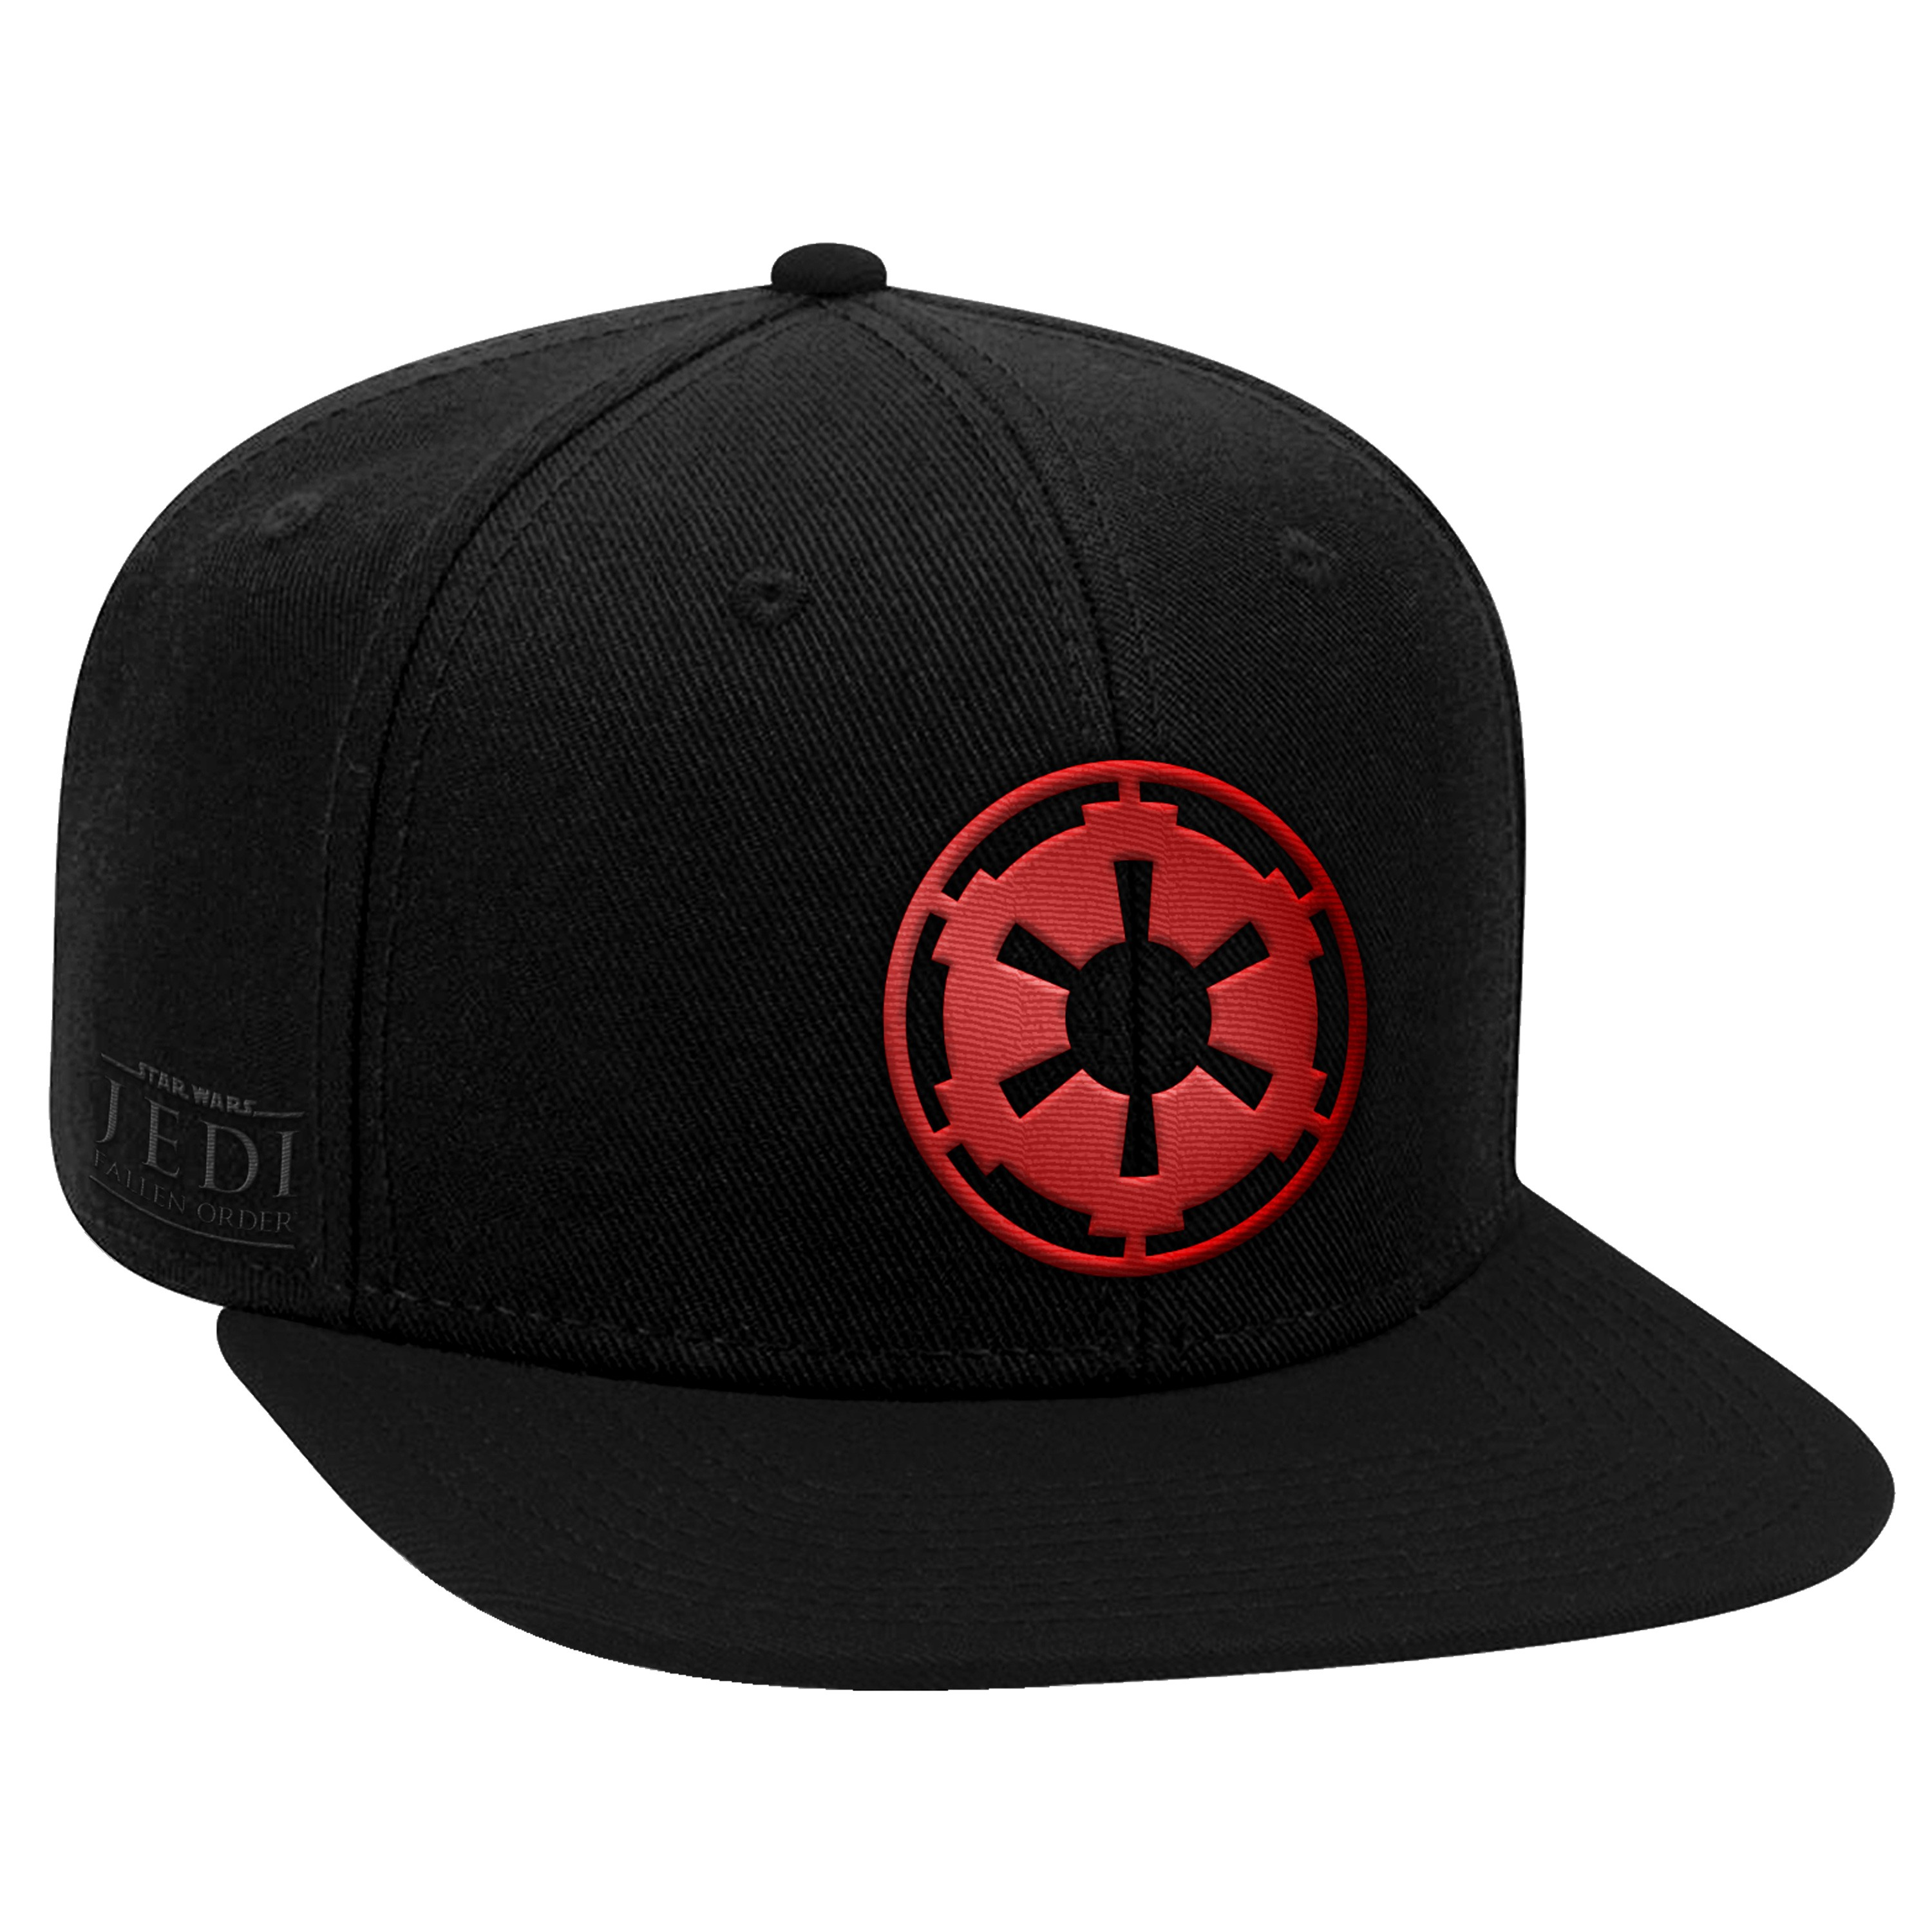 Star Wars Hat with a Jedi Fallen Order Red Empire Design, Image 1